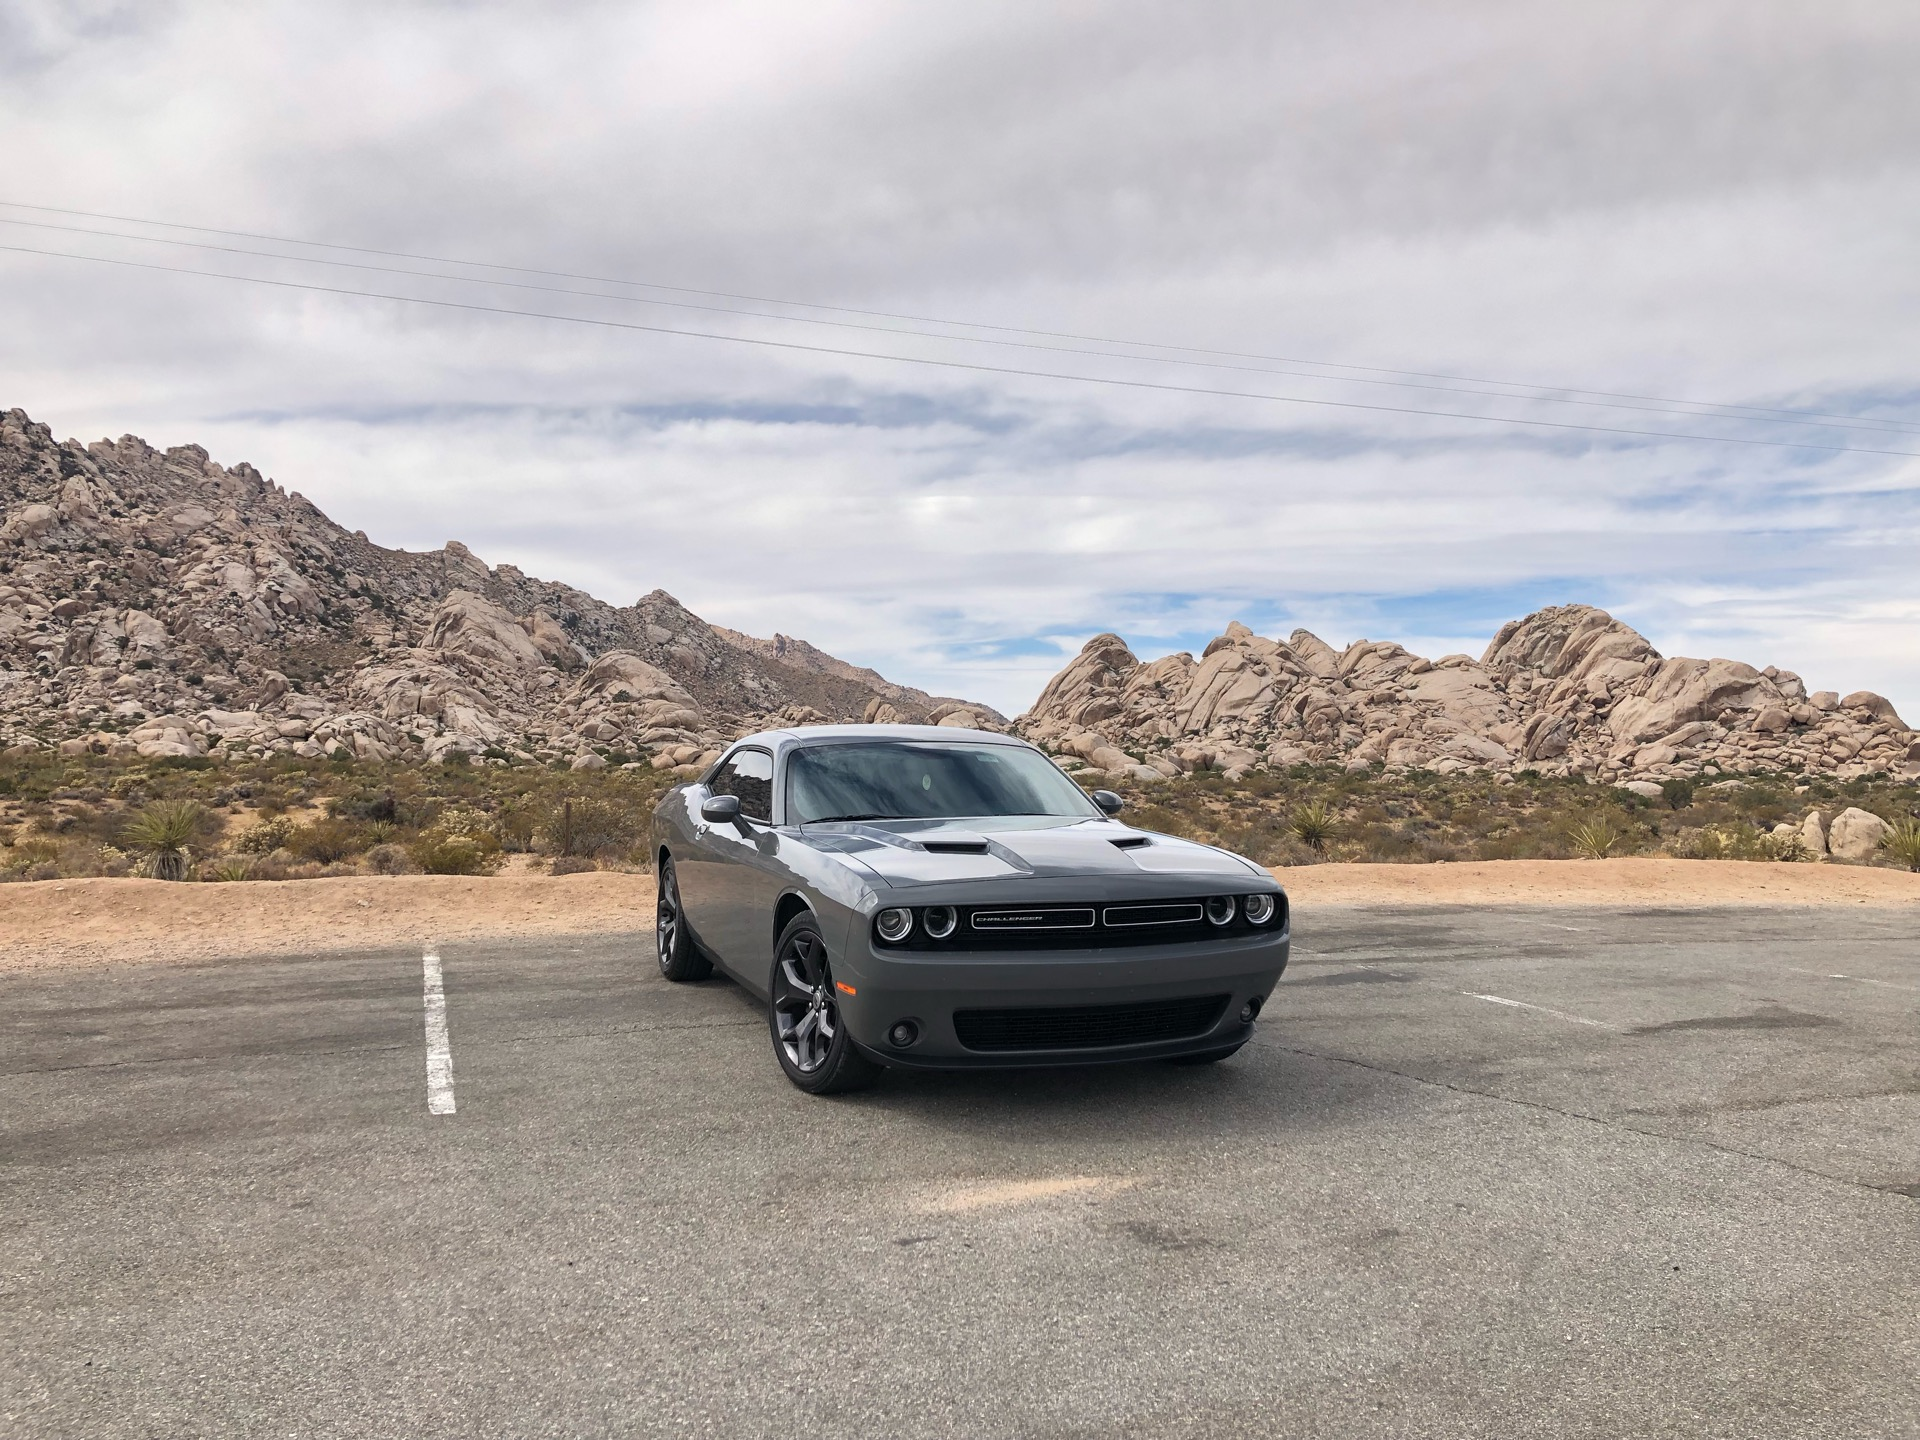 2018 Dodge Challenger - photo 0